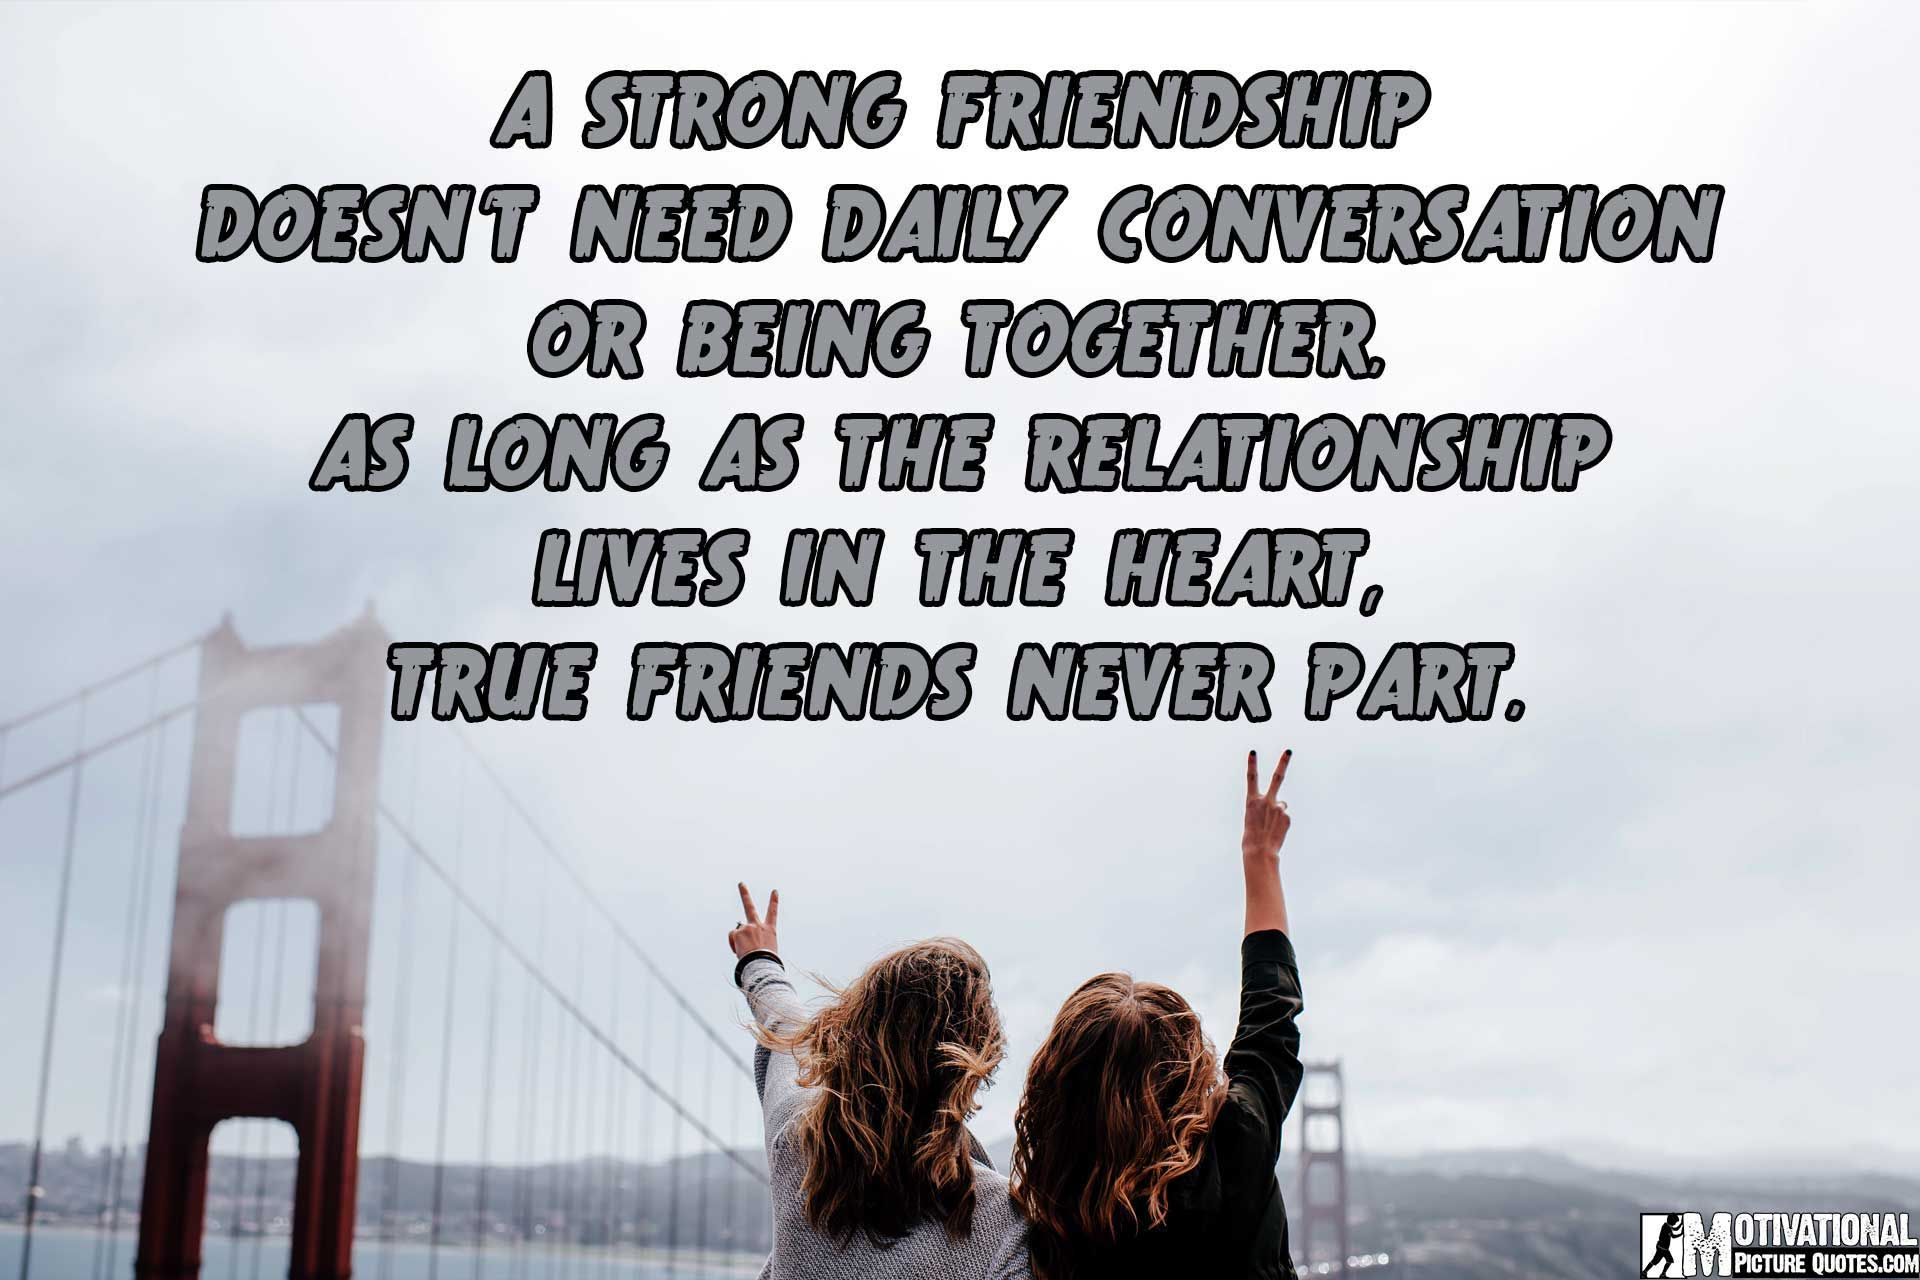 Quotes About Friendship Pictures Image Result For Friendship Quotes  Best Friends  Pinterest